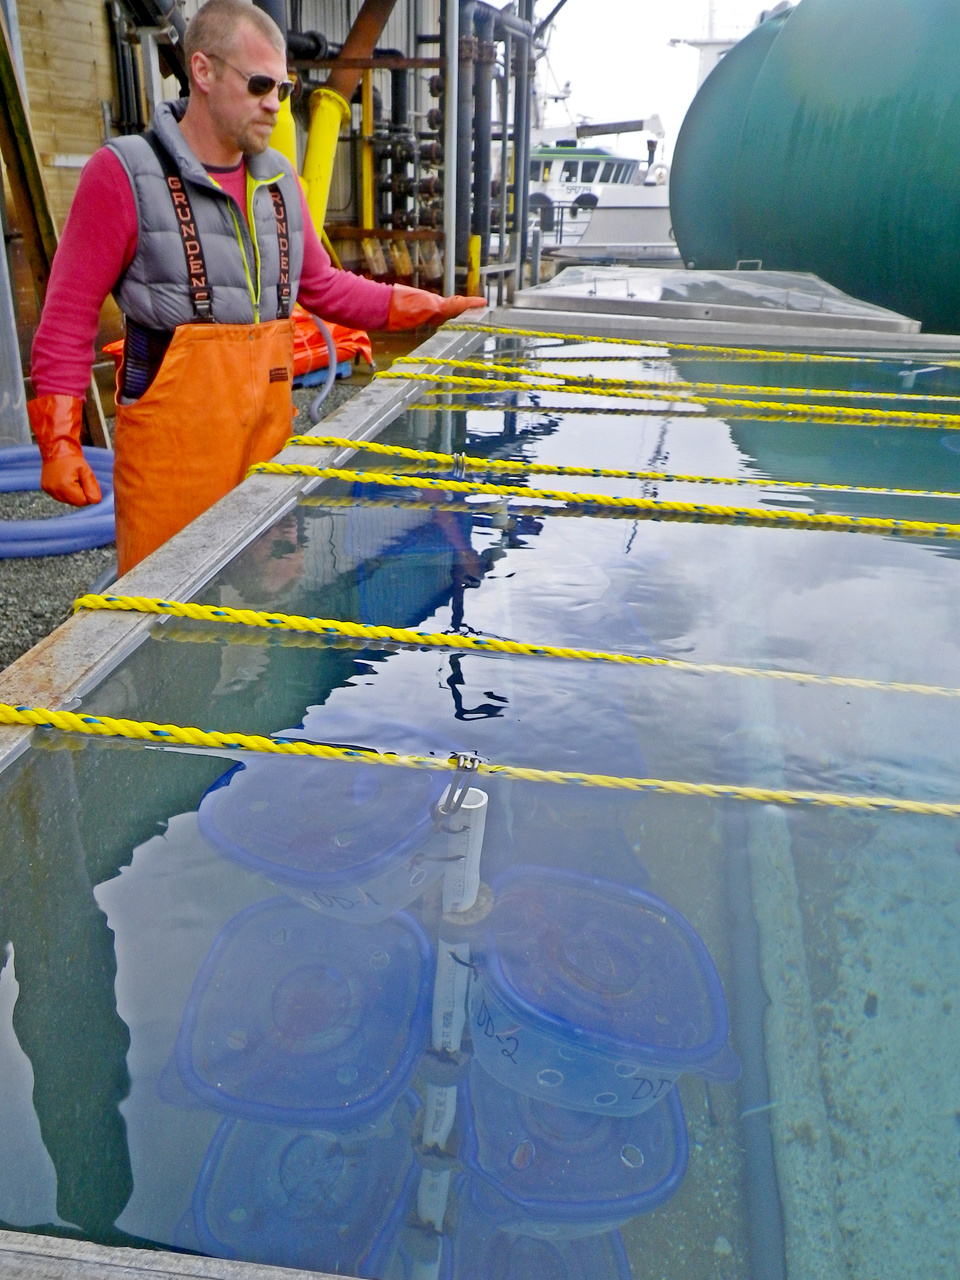 Jeff Cox (Bering Sea Fisheries Research Foundation) is checking for molted crab in condos.